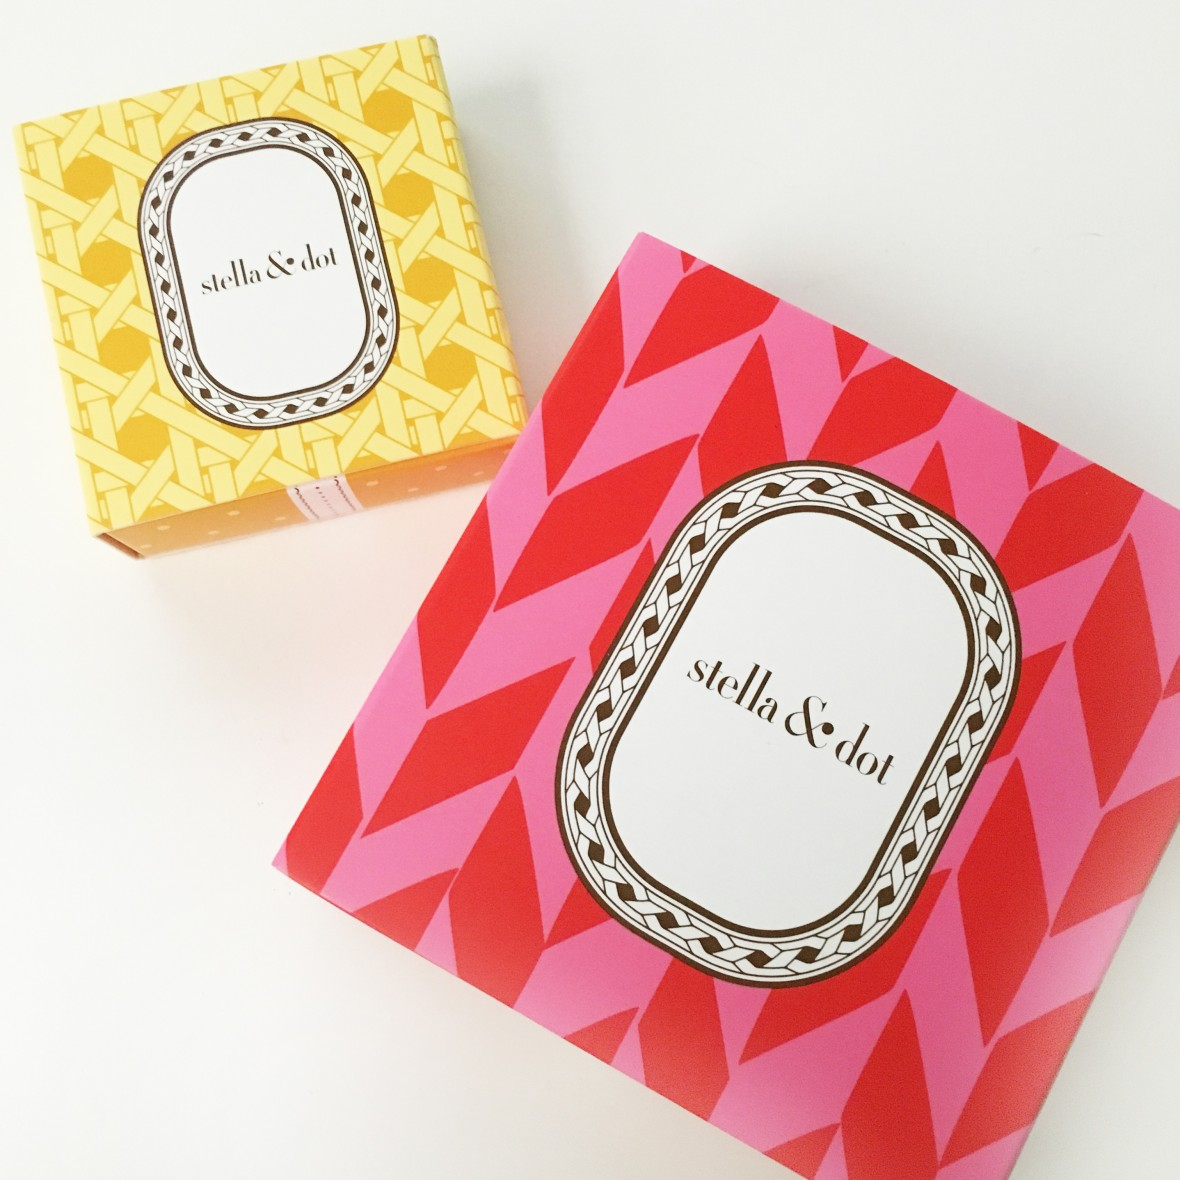 stella dot packaging - perfect gifts for every girl on your list